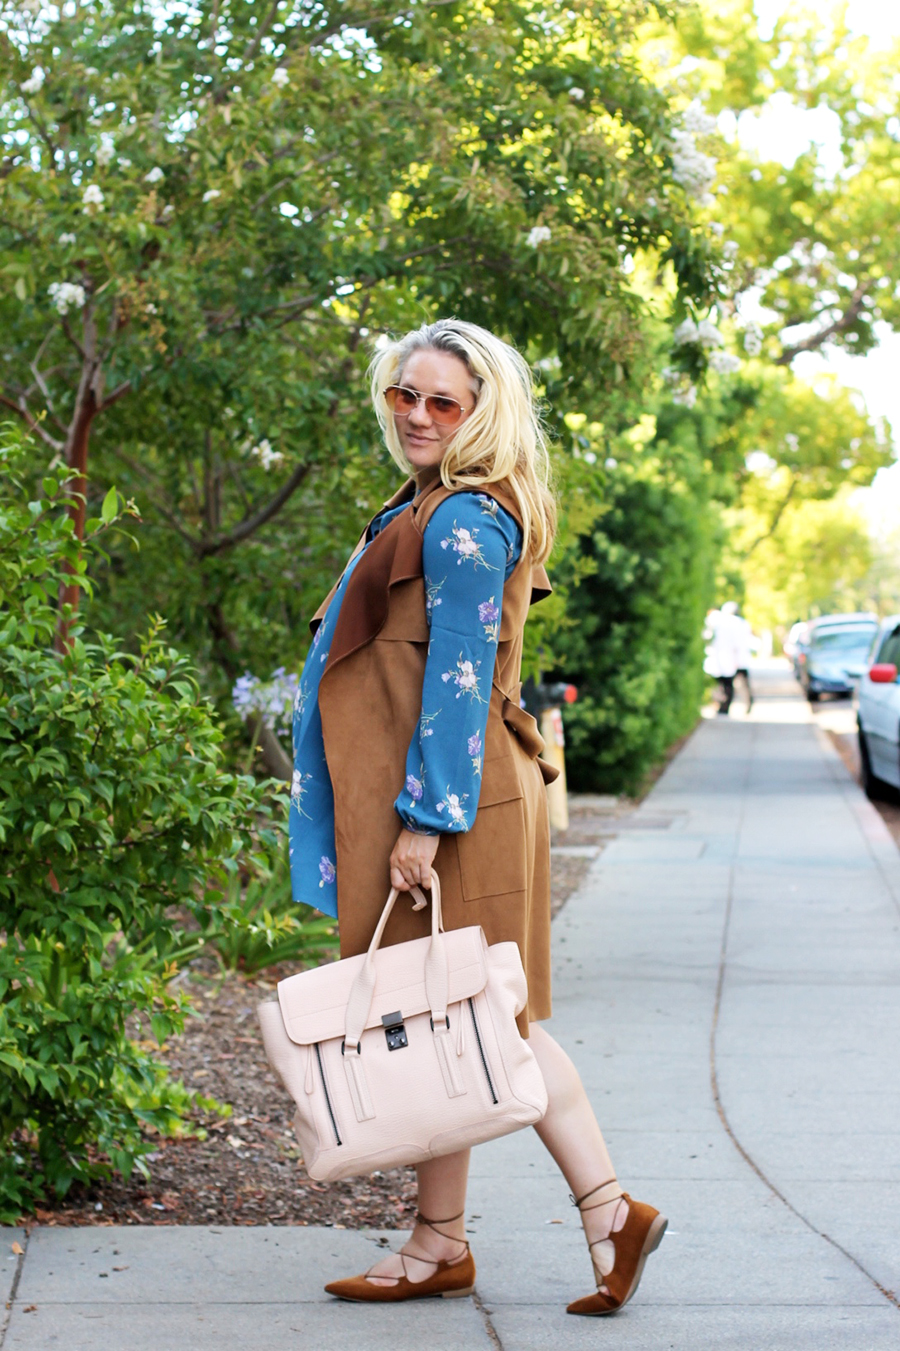 Fall Transition-Nordstrom Anniversary Sale-Maternity Style-Fall Fashion-Have Need Want 5